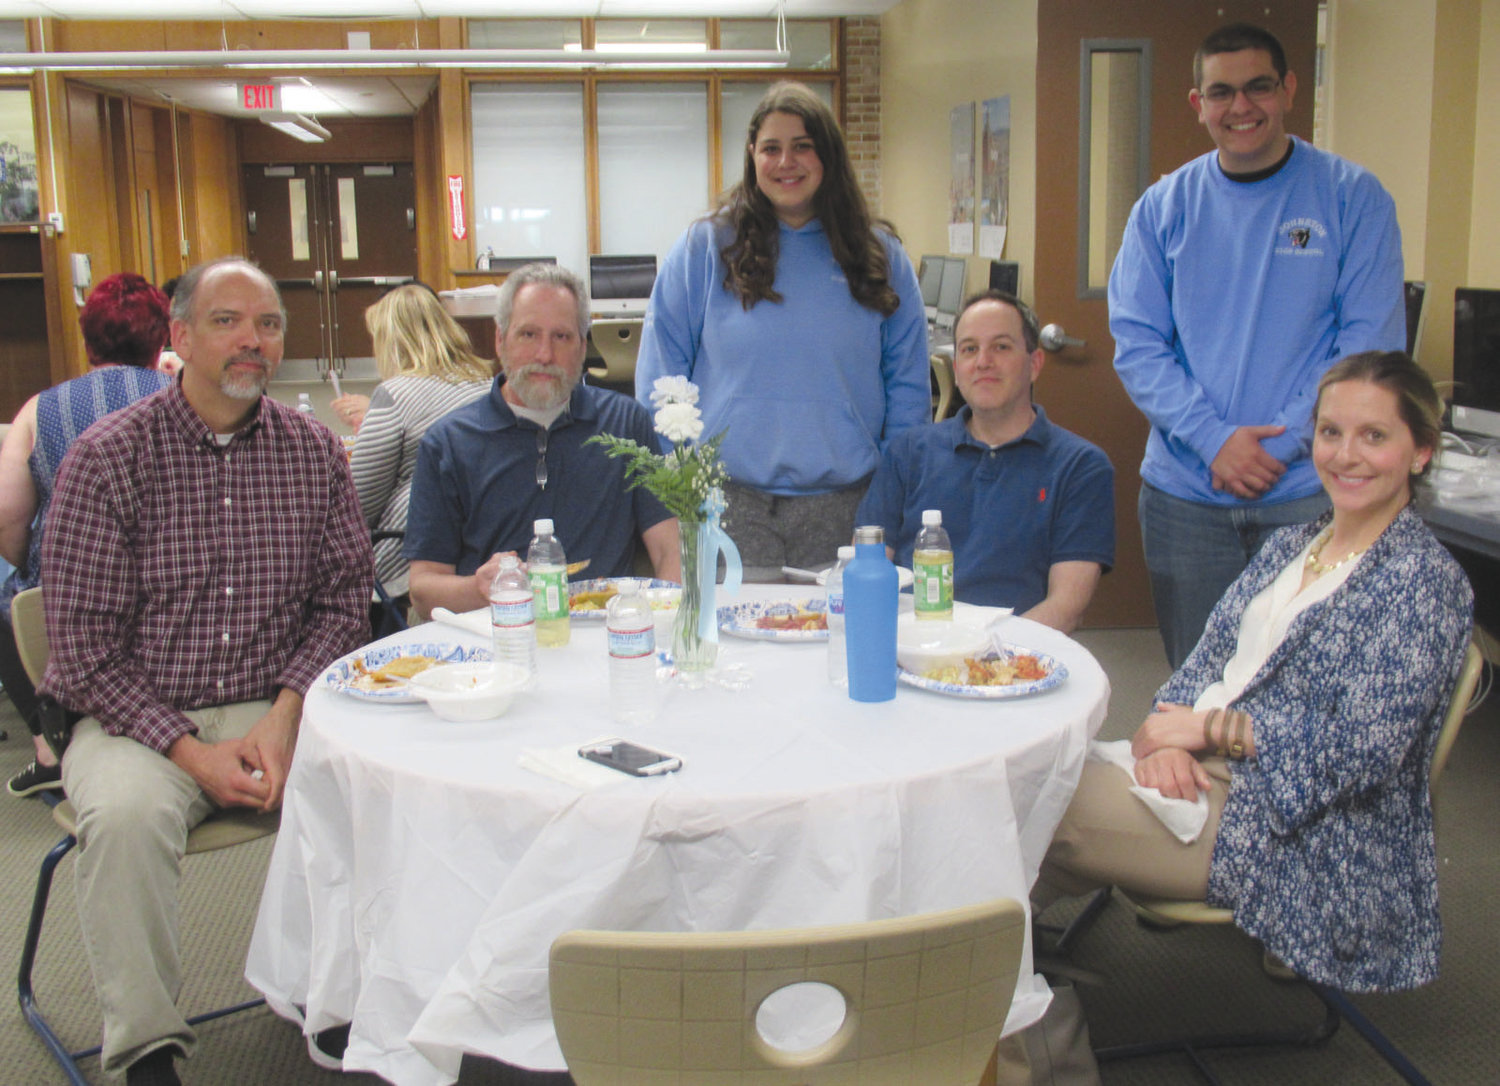 GRAND GUESTS: Student Council president Emily Raposo and senior class president Zachary Zambarano thank faculty members Tim Stahl, Ed Saravo, Doug DiPanni and Terri Florio for coming to the Teacher Appreciation Luncheon.